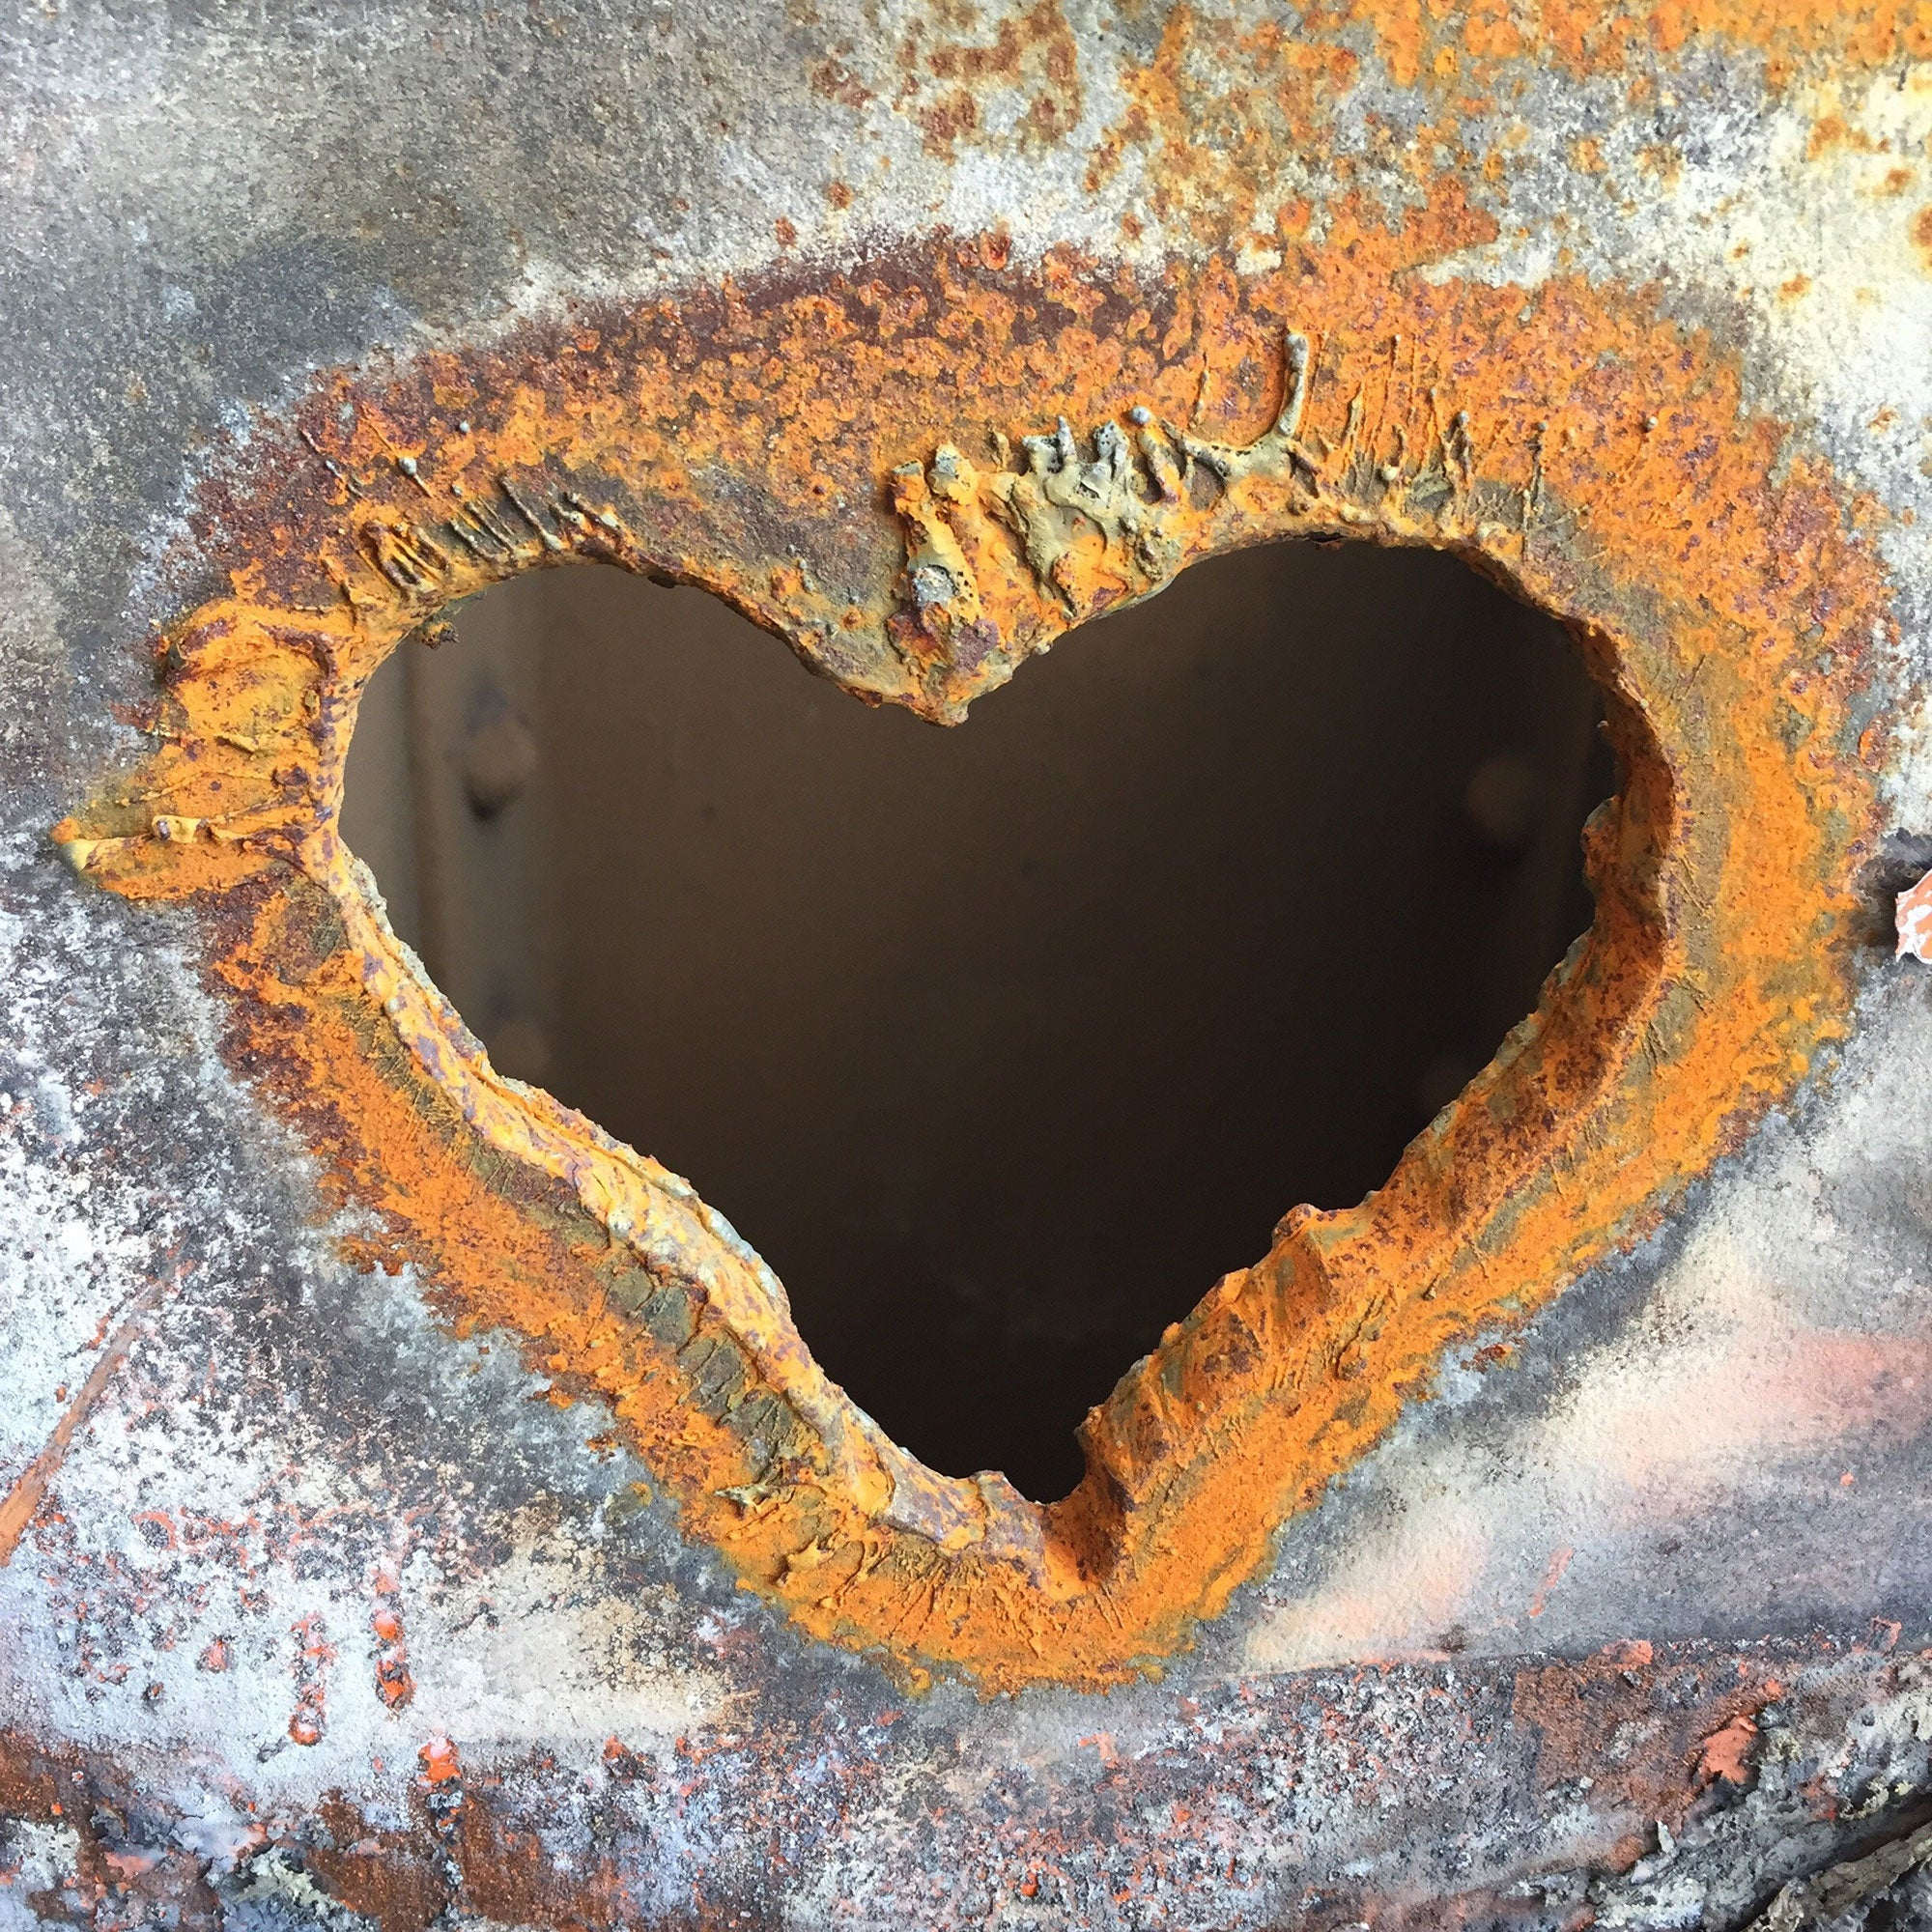 Viewed here is a slab of steel in which a heart shape has been torched.